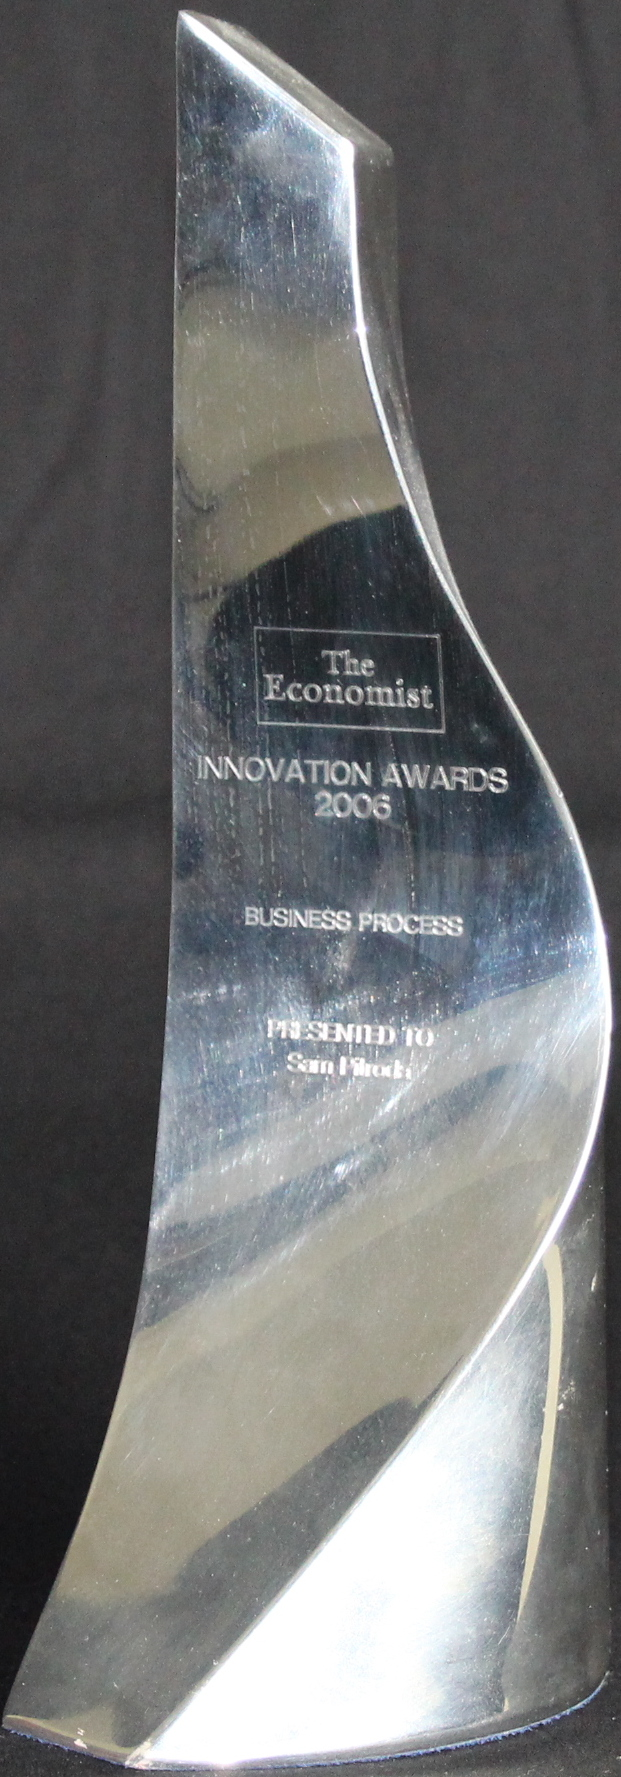 Business Process Innovation Award, The Economist, 2006